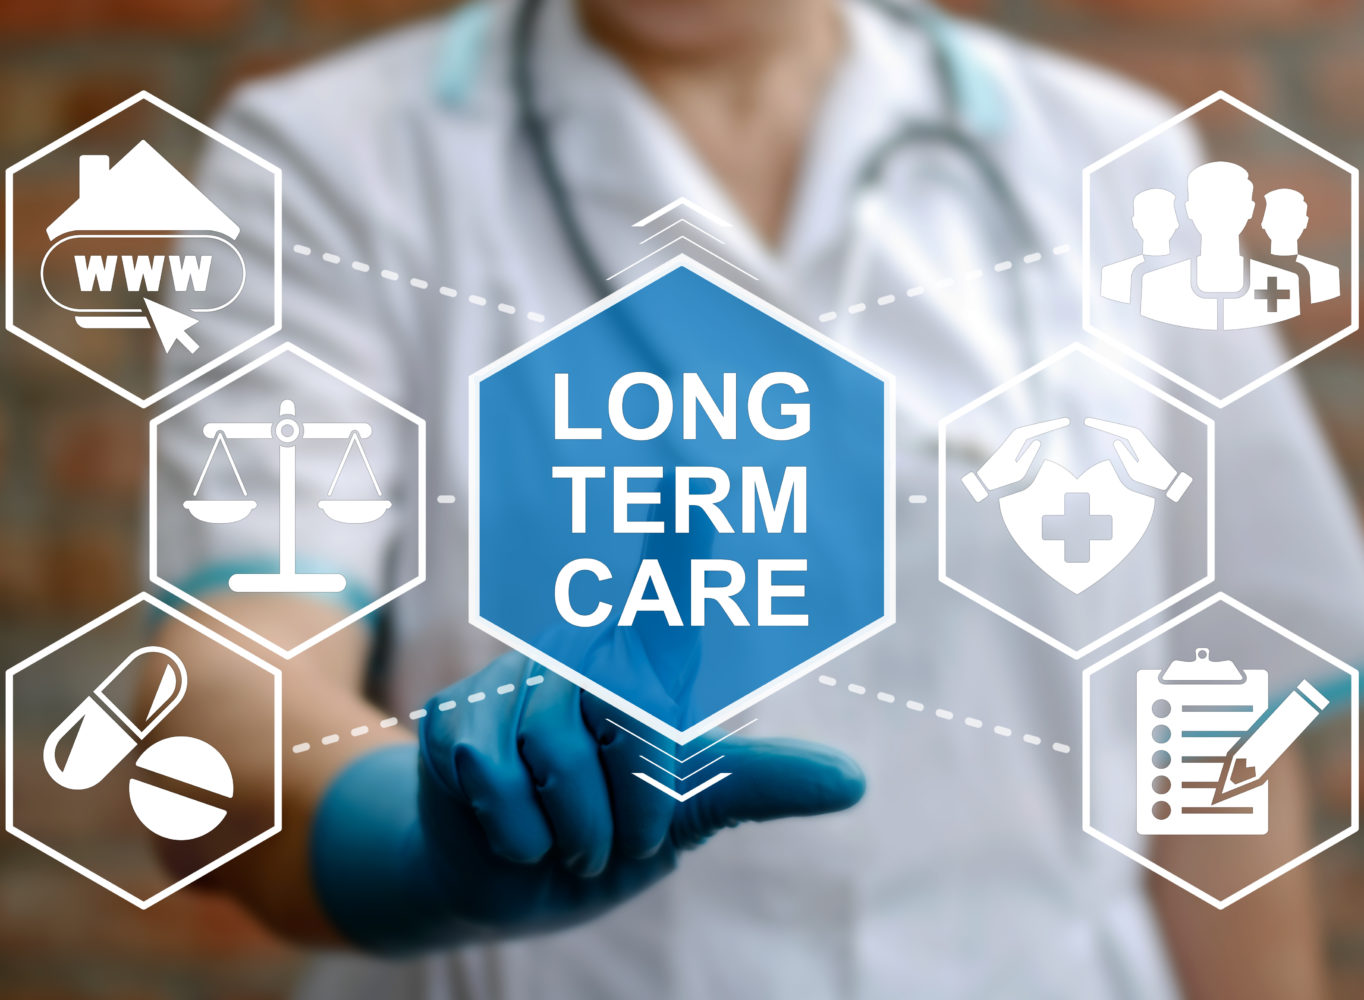 The Long-Term Care Landslide